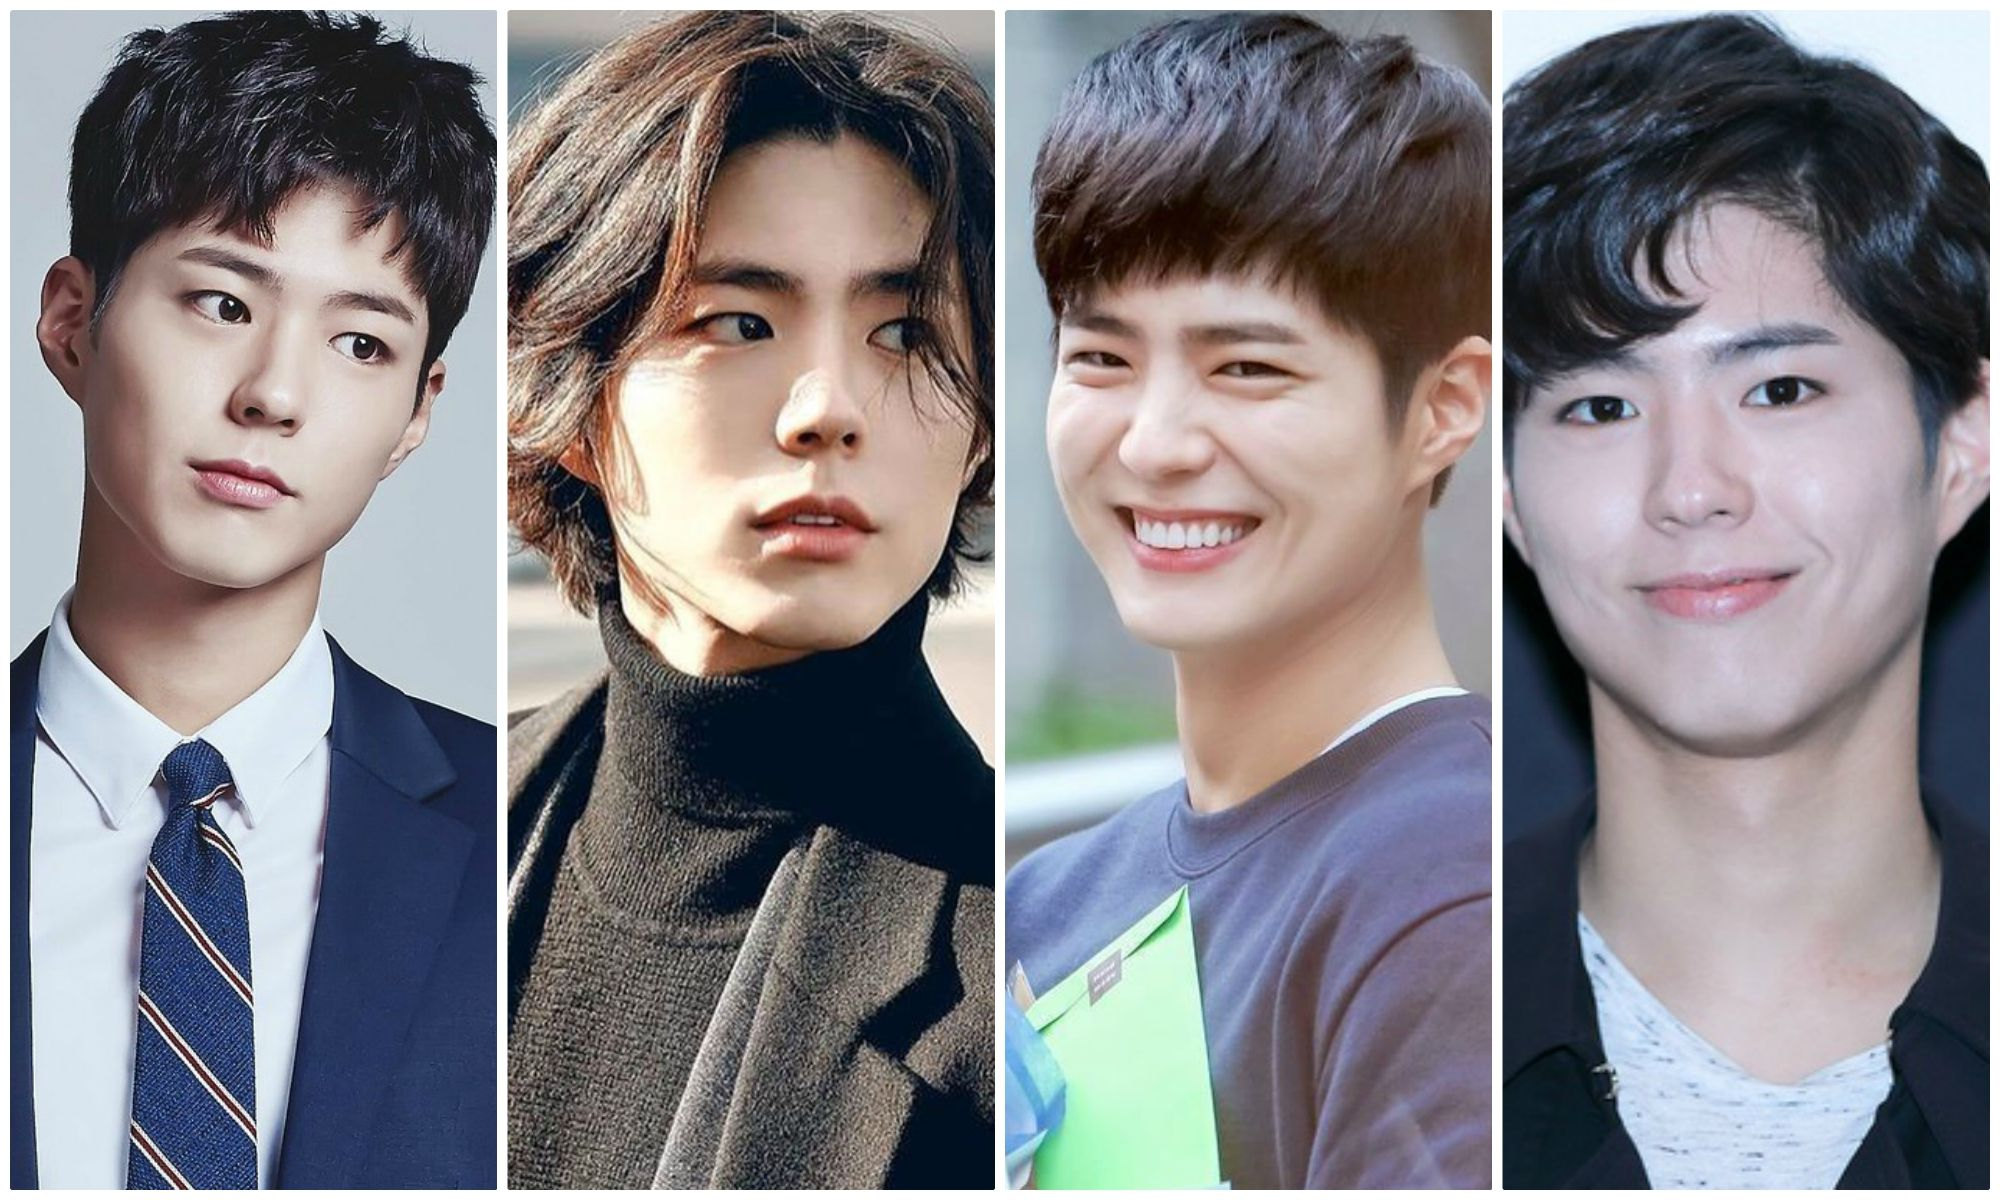 Park Bo Gum which looks different when changing his hairstyle